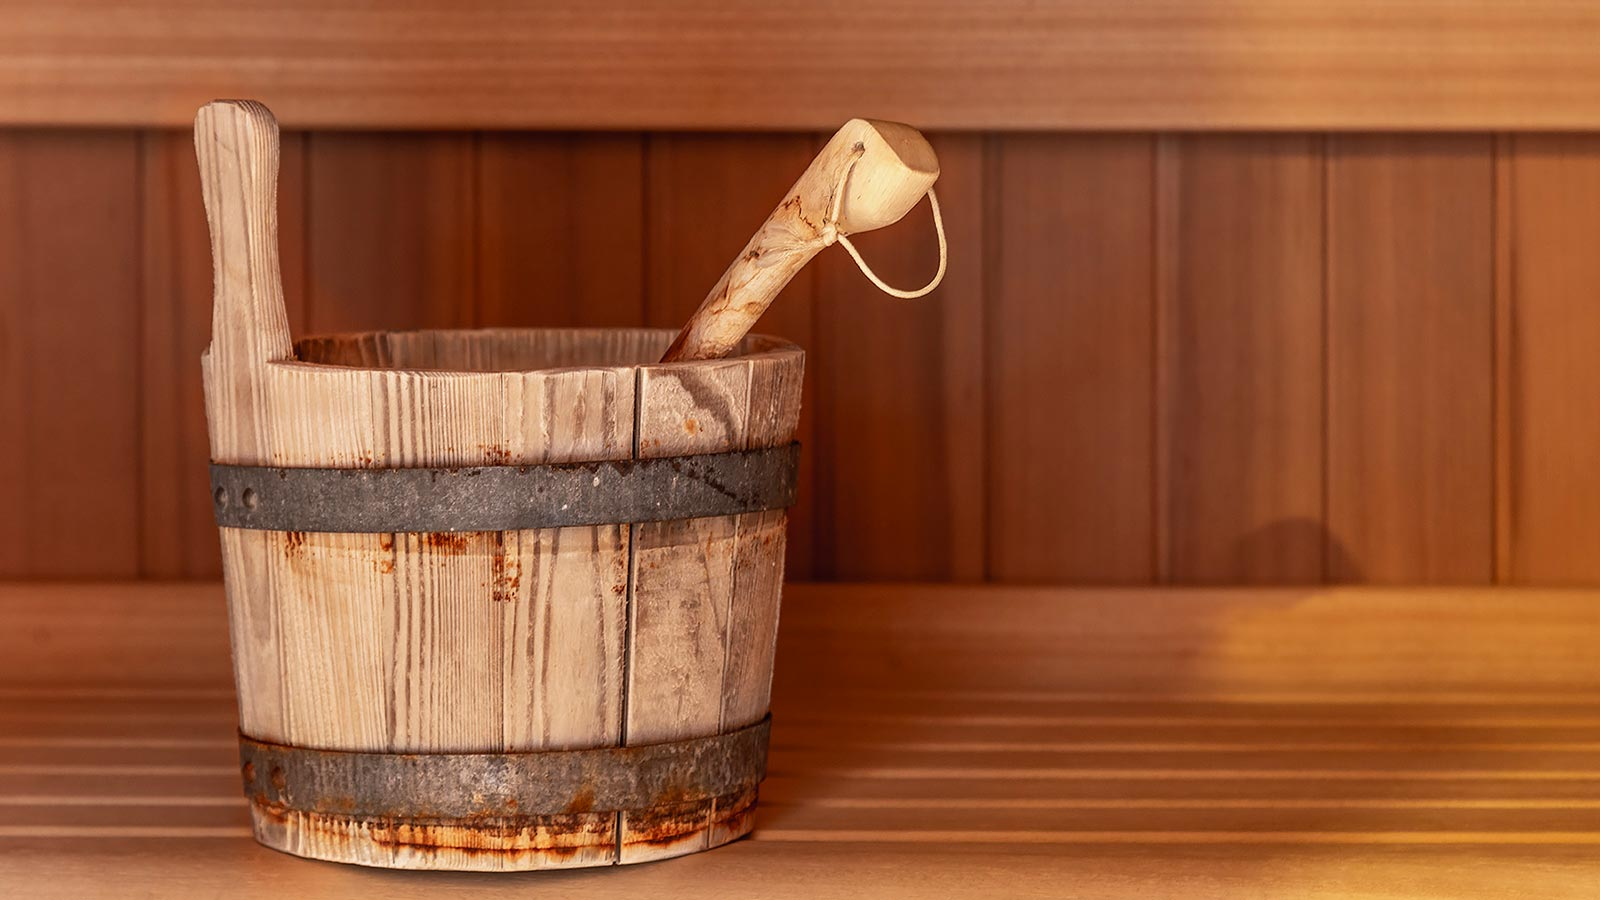 Detail of a wooden bucket used during a wellness treatment at Residence Antares